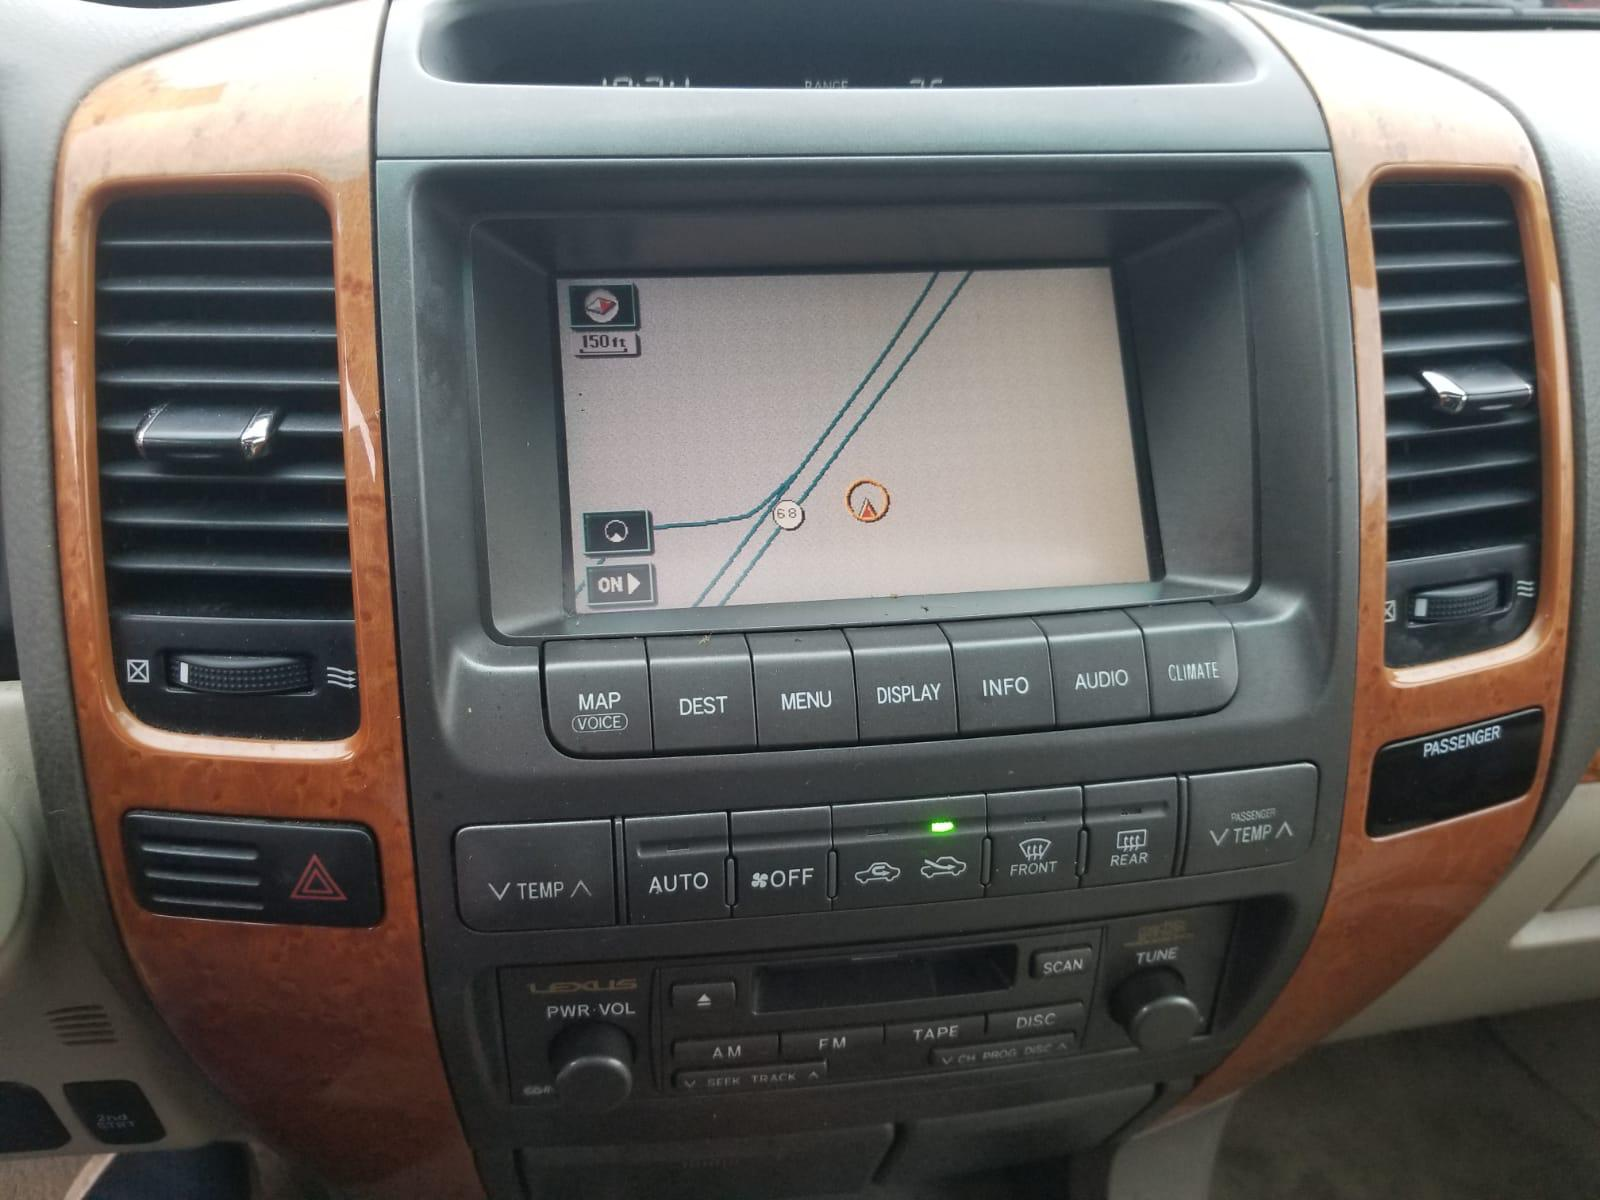 2005 Lexus Gx 470 For Sale At Copart New Britain Ct Lot 51577968 Land Cruiser